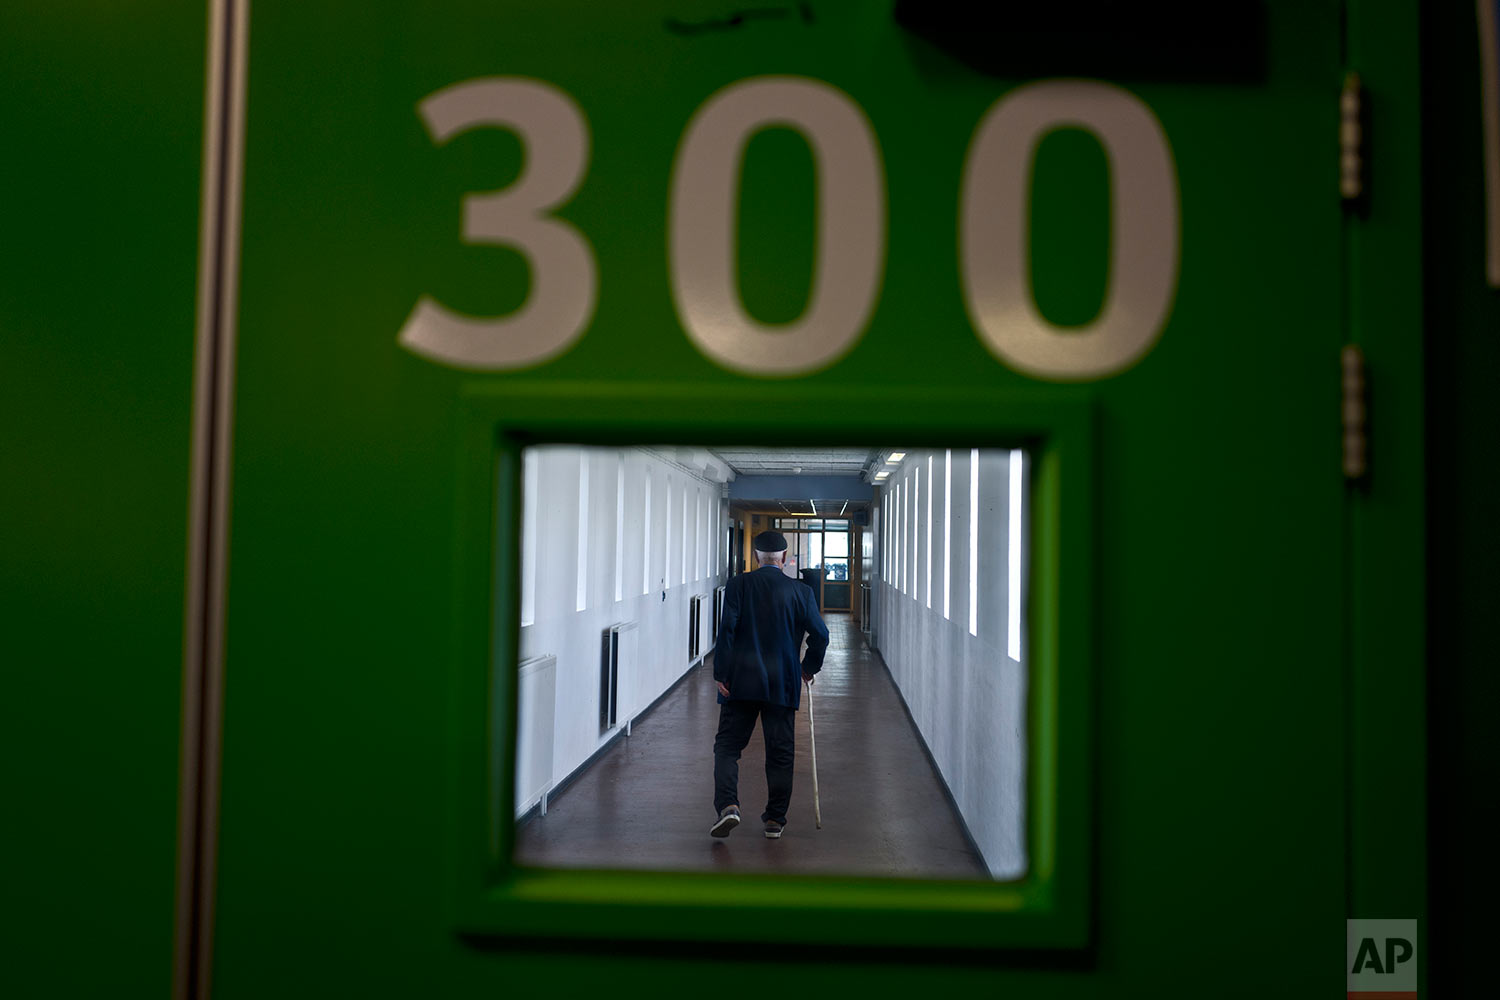 In this Wednesday, July 12, 2017 photo, an elderly Iraqi refugee man walks back to his room through a corridor of the former prison of Bijlmerbajes in Amsterdam, Netherlands. (AP Photo/Muhammed Muheisen)